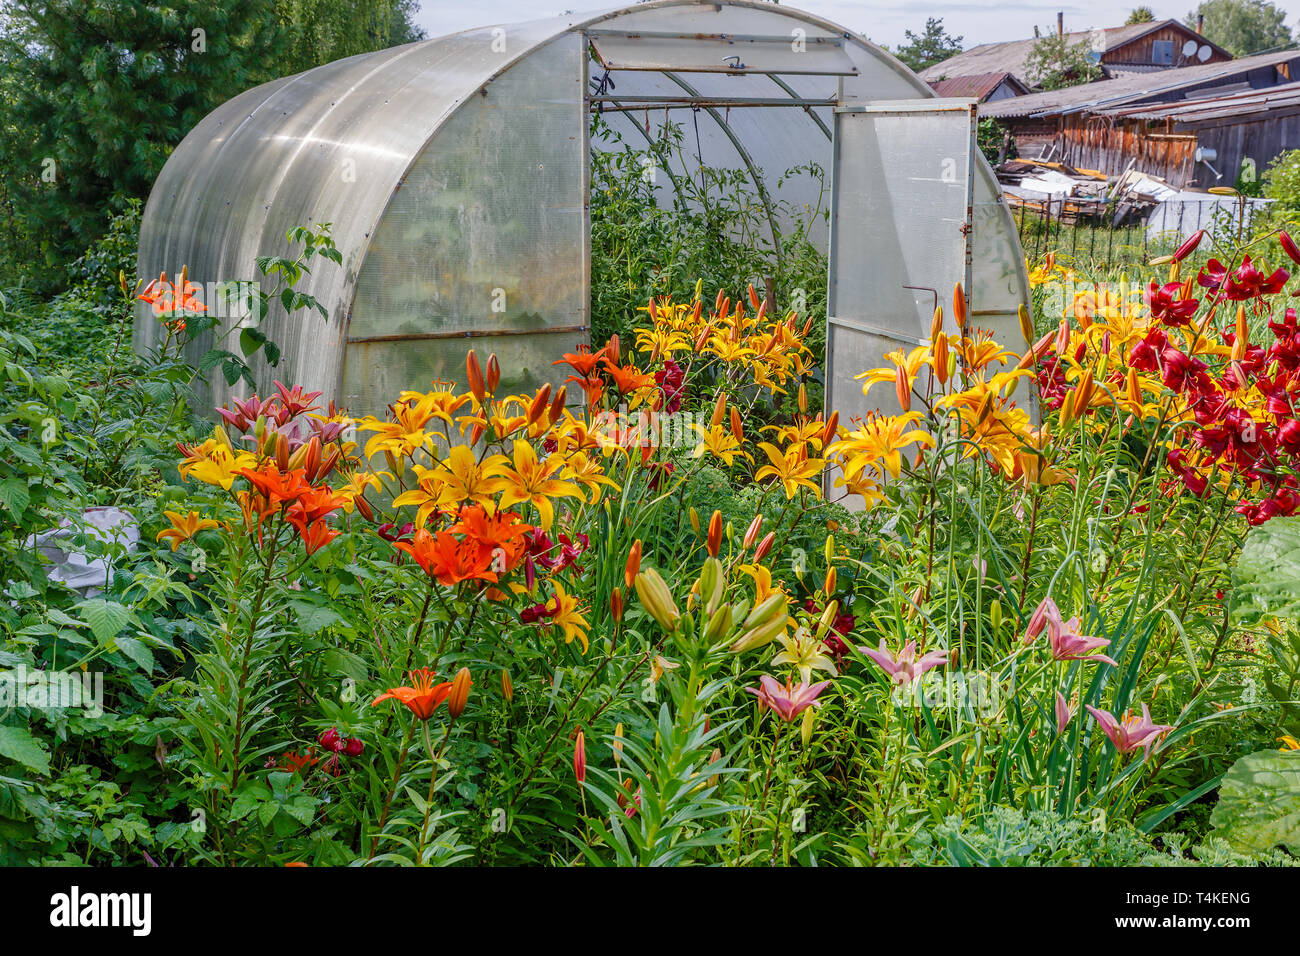 greenhouse with tomatoes, Alstroemeria Sweet Laura, yellow flowers in the garden - Stock Image